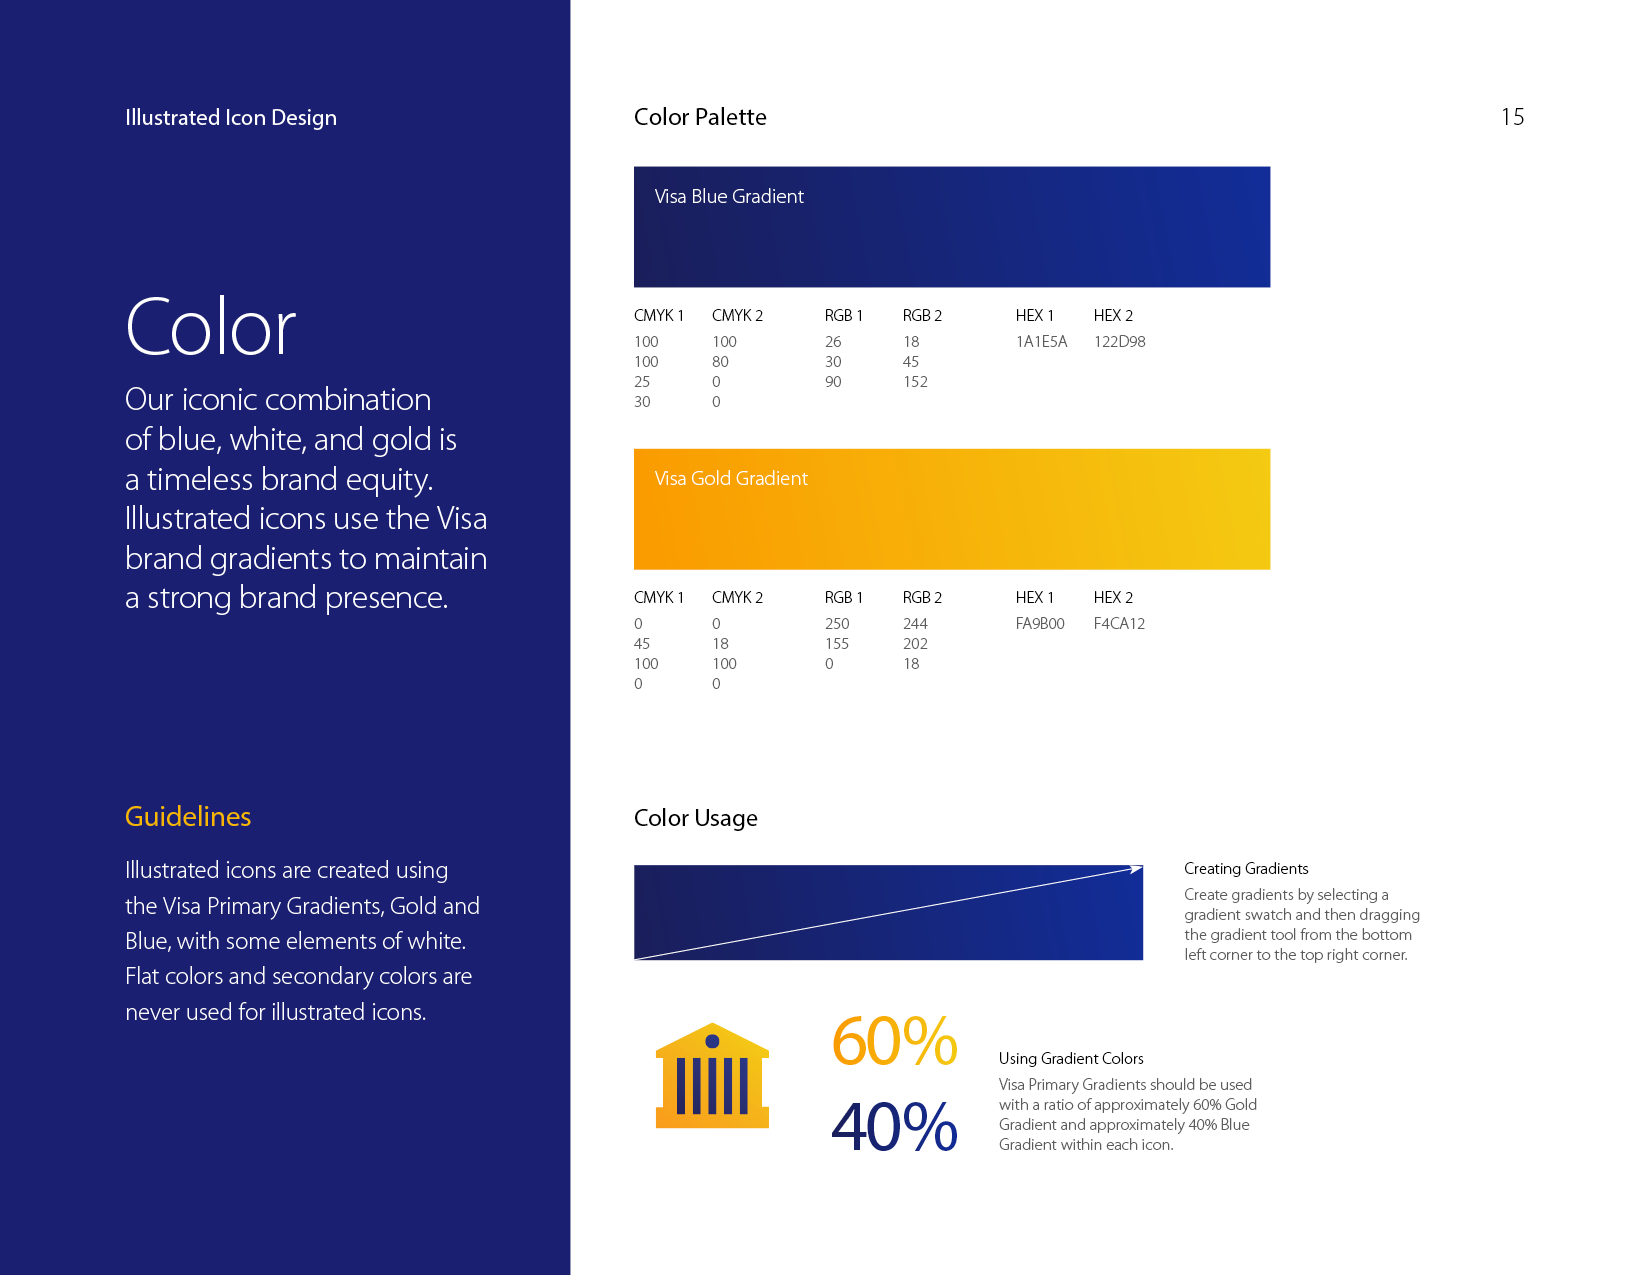 Visa illustrated icons style guide colors